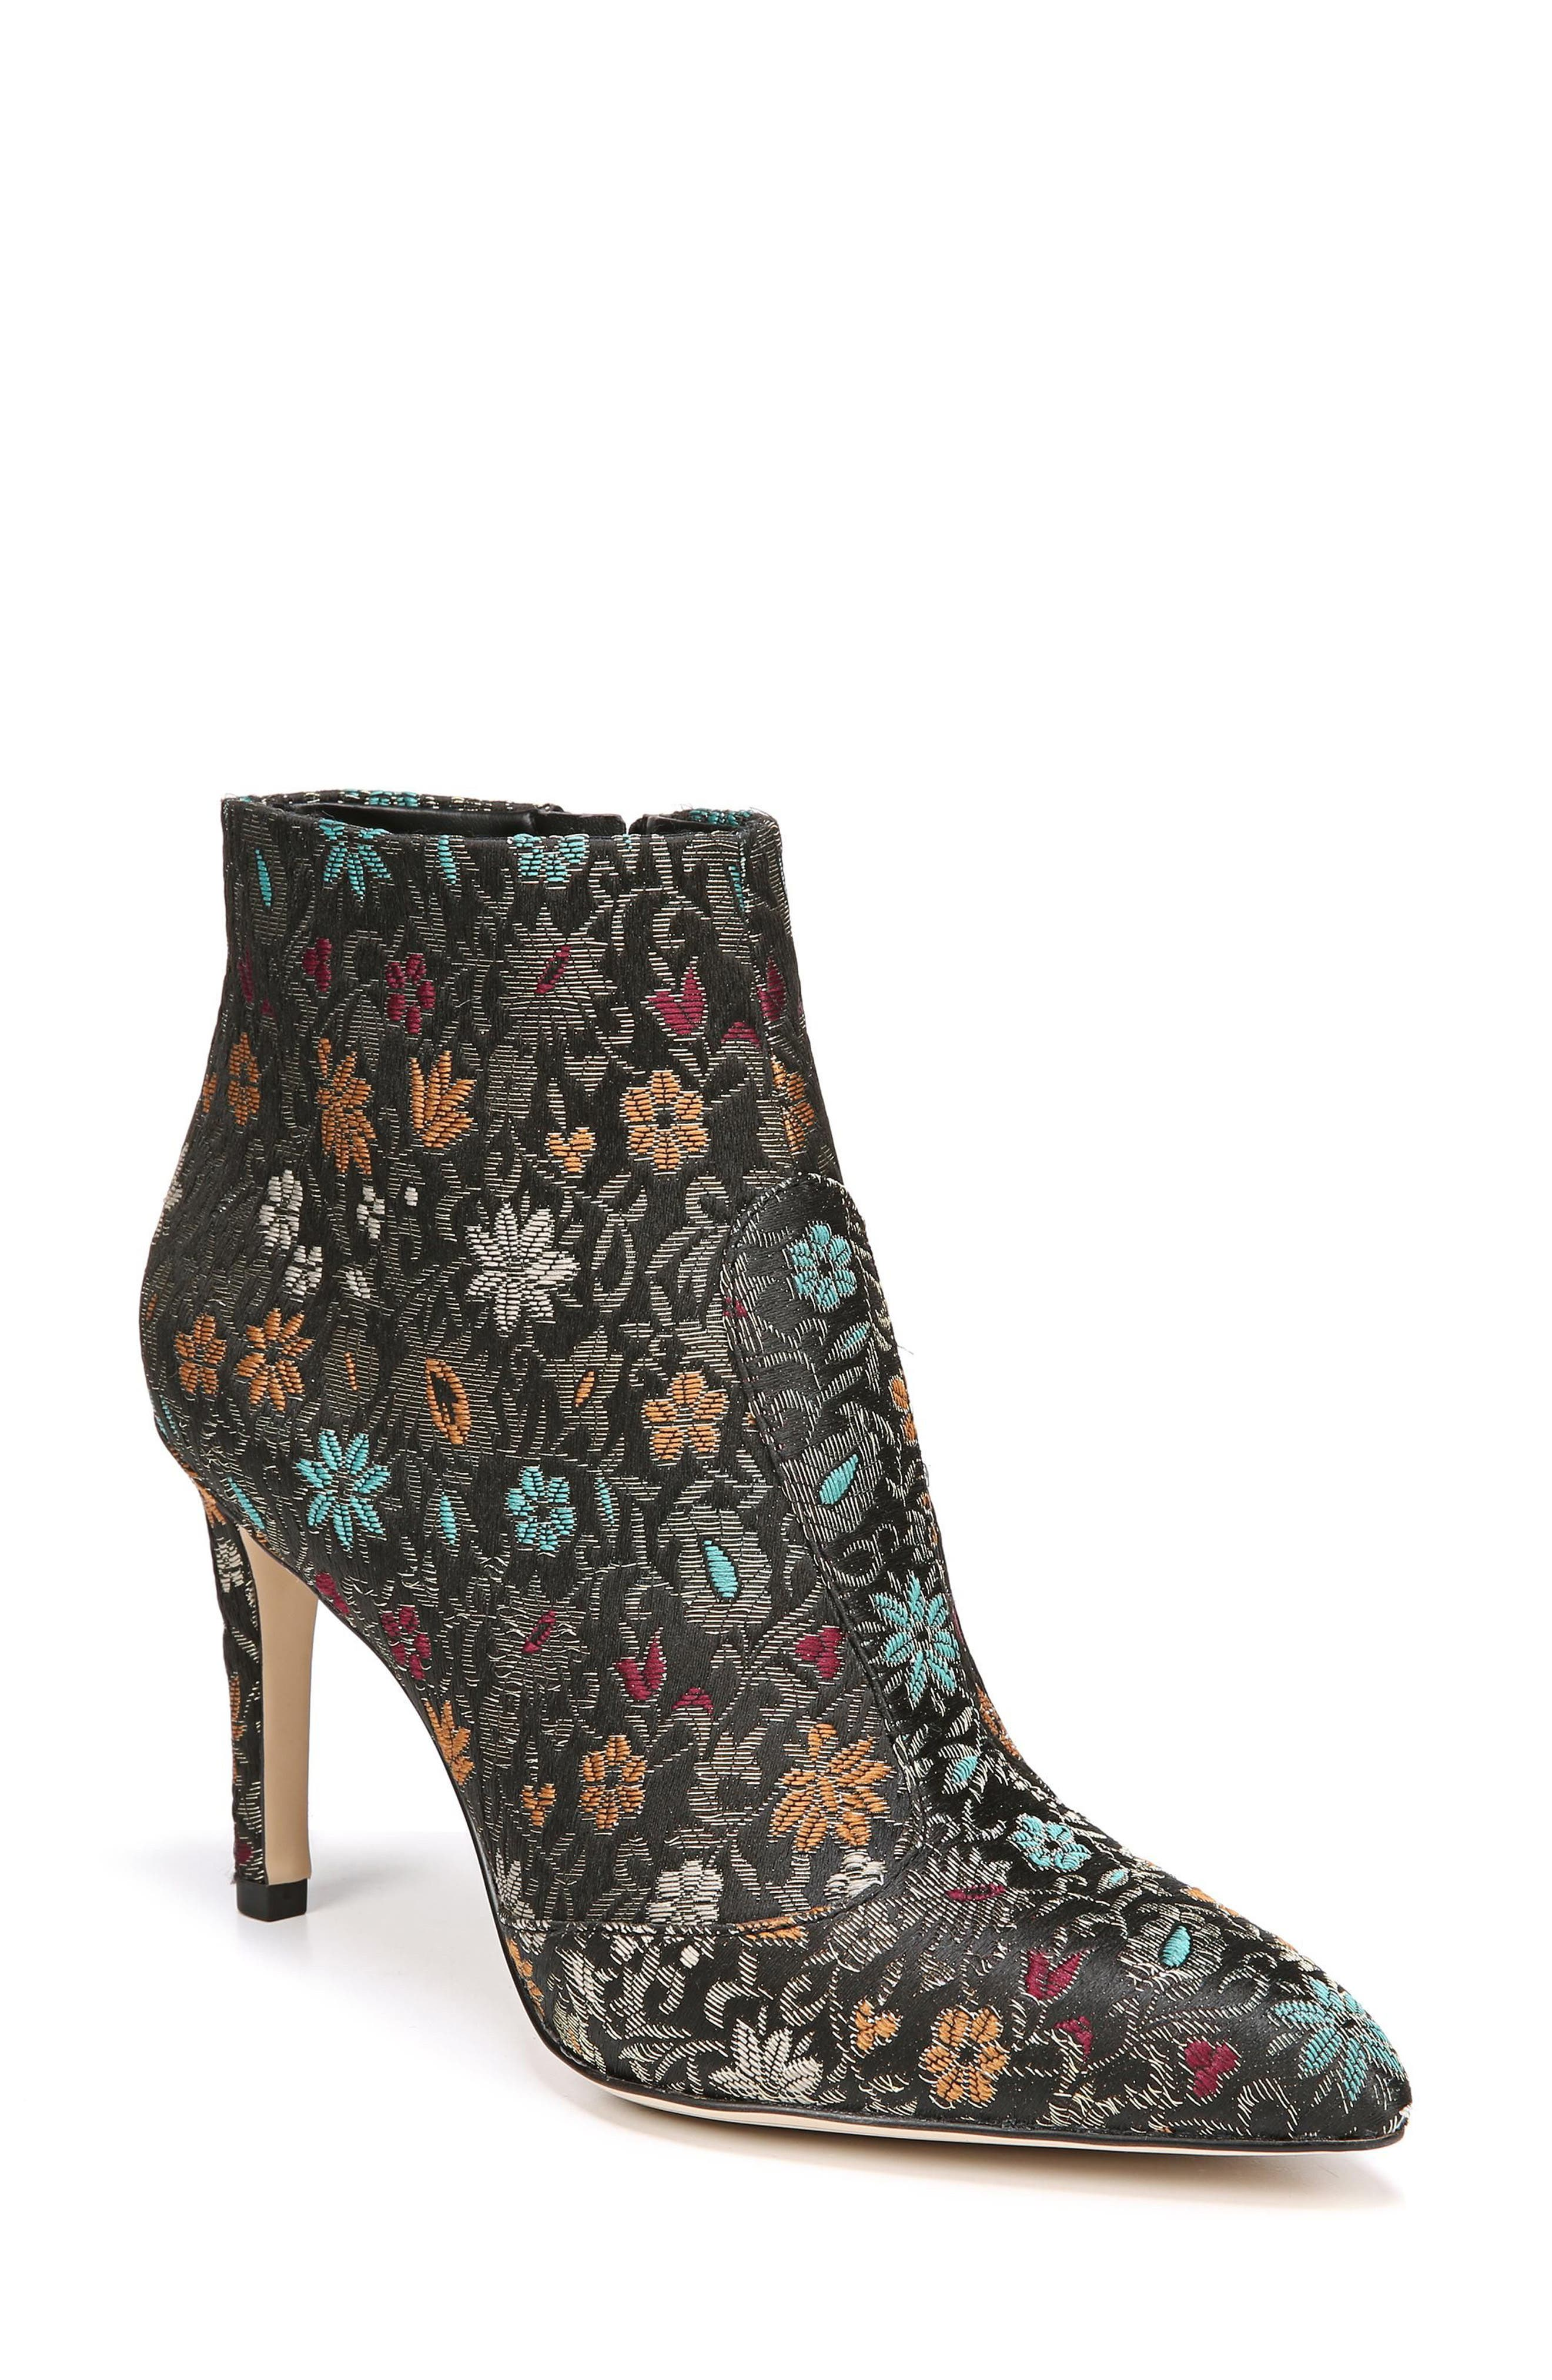 Olette Pointy Toe Bootie,                             Main thumbnail 1, color,                             Black Floral Brocade